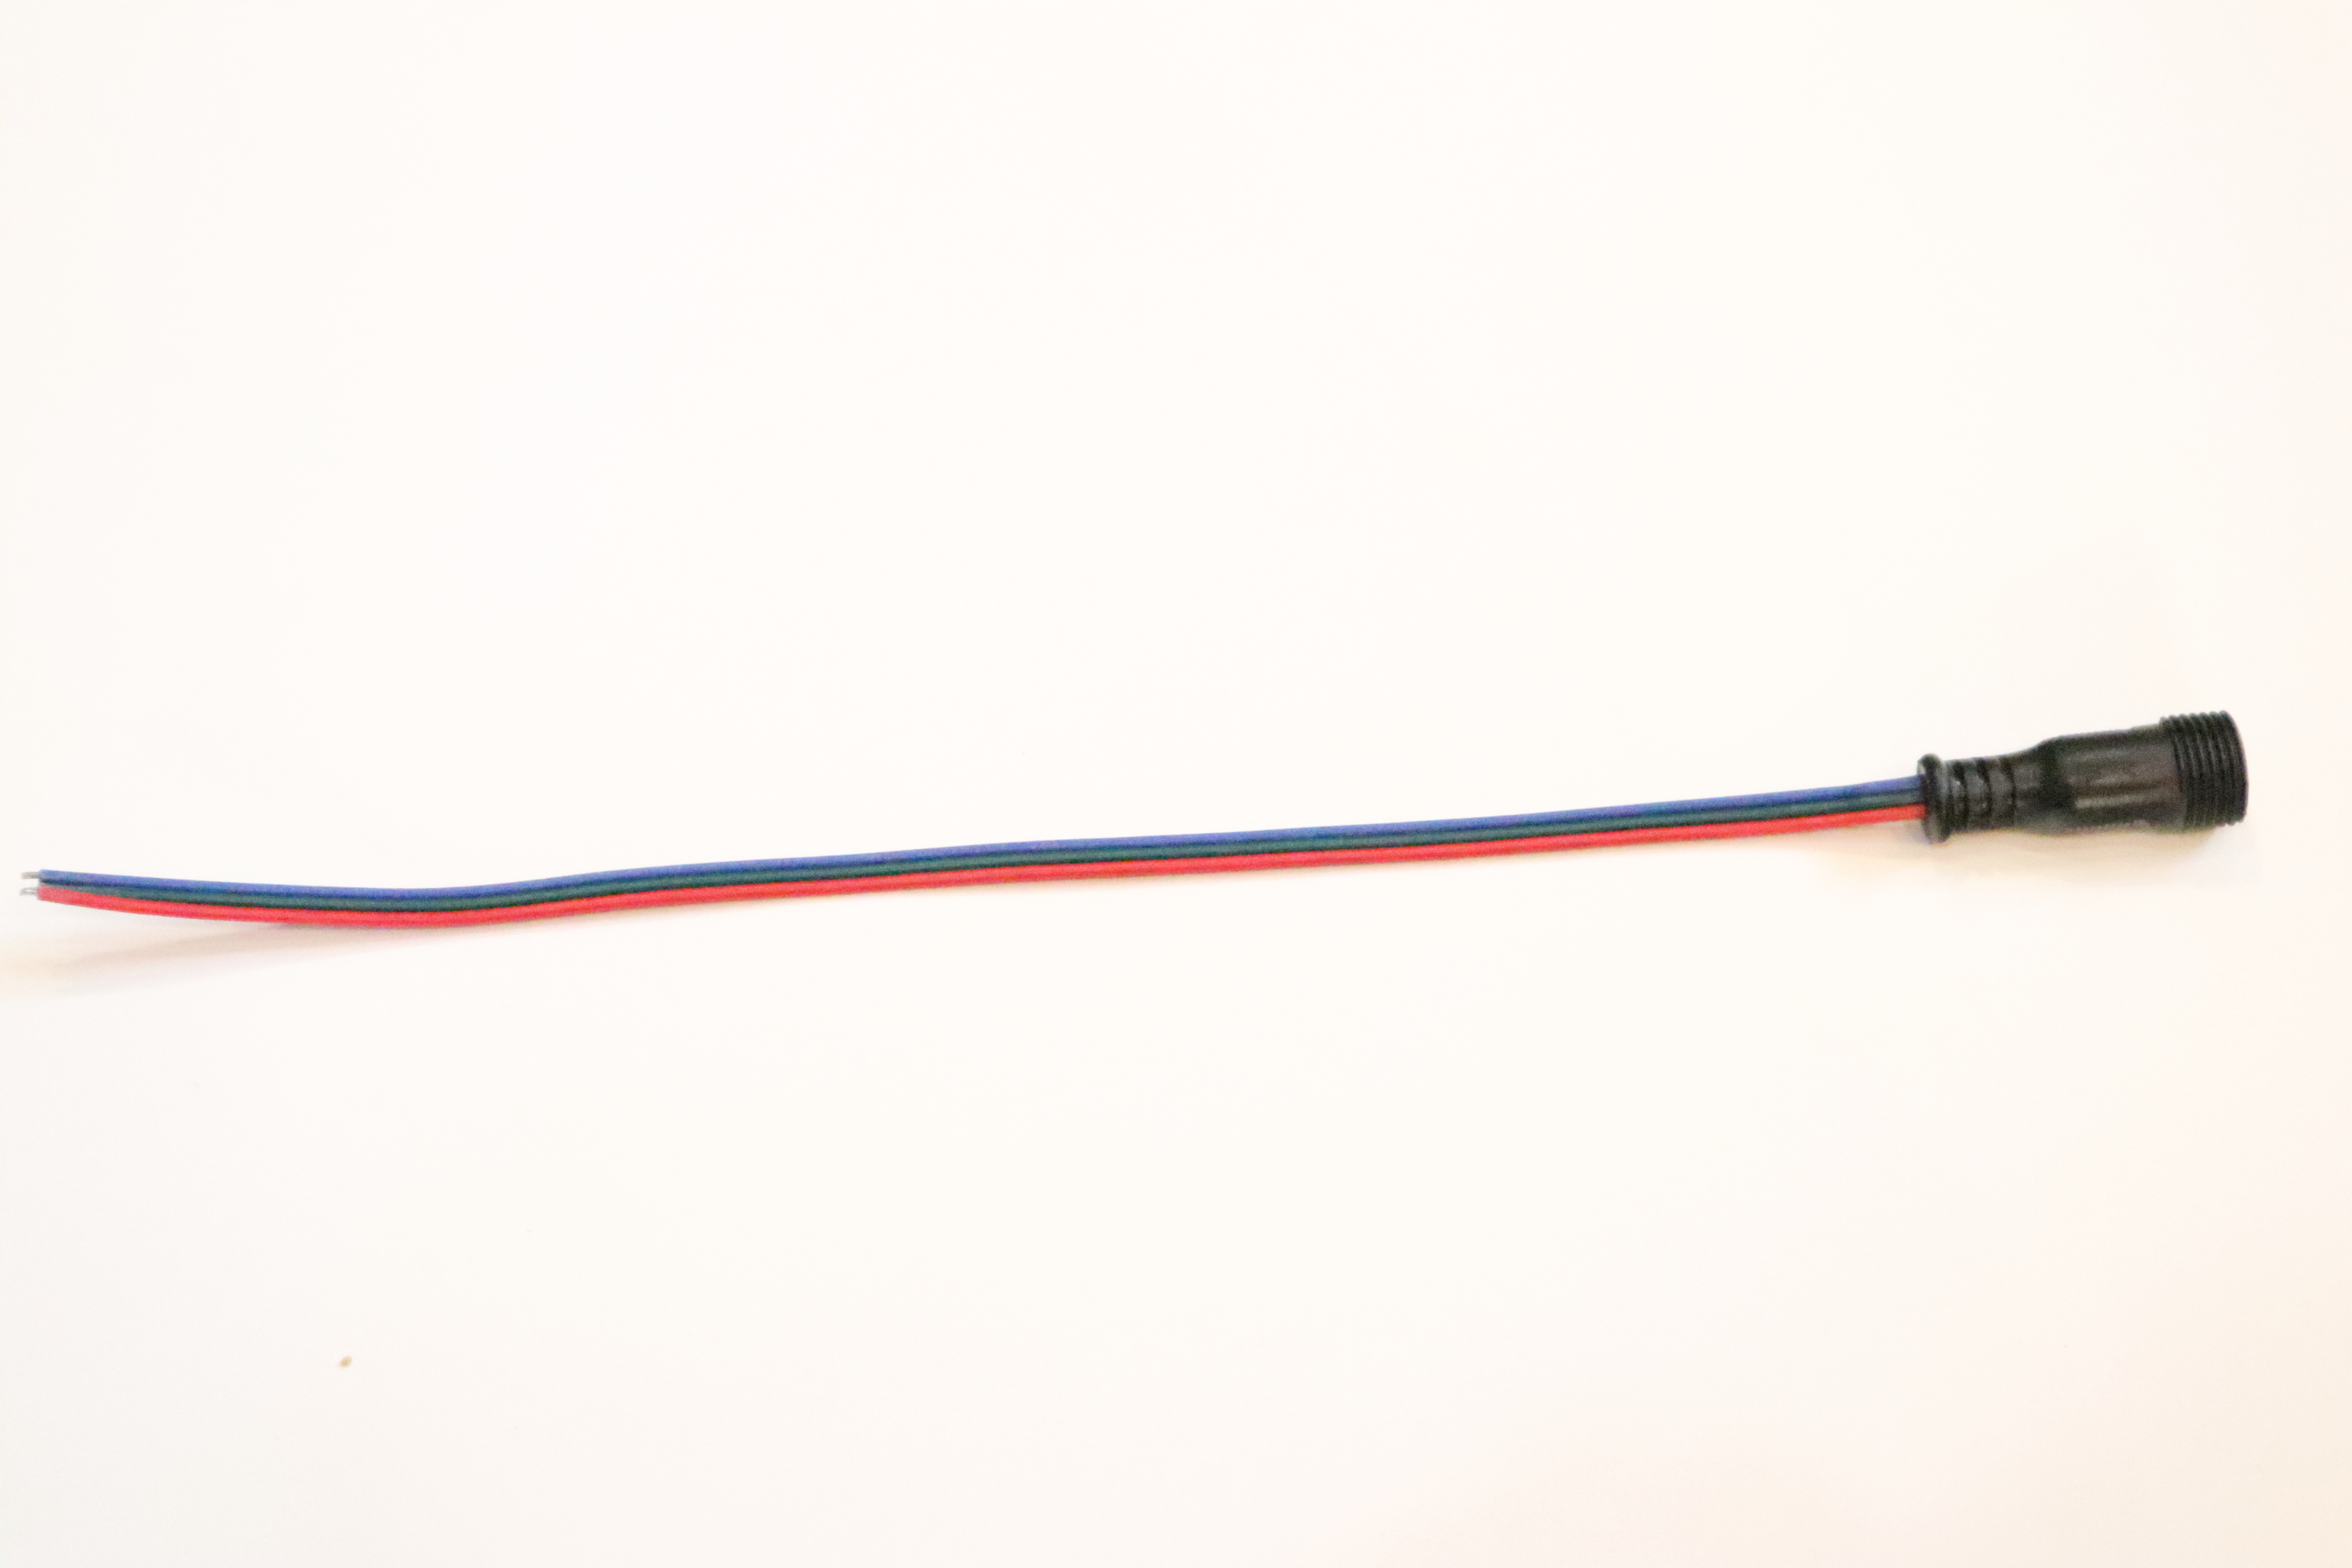 RGB 3-pin Flat Wire Pig Tails - 12 inch FEMALE